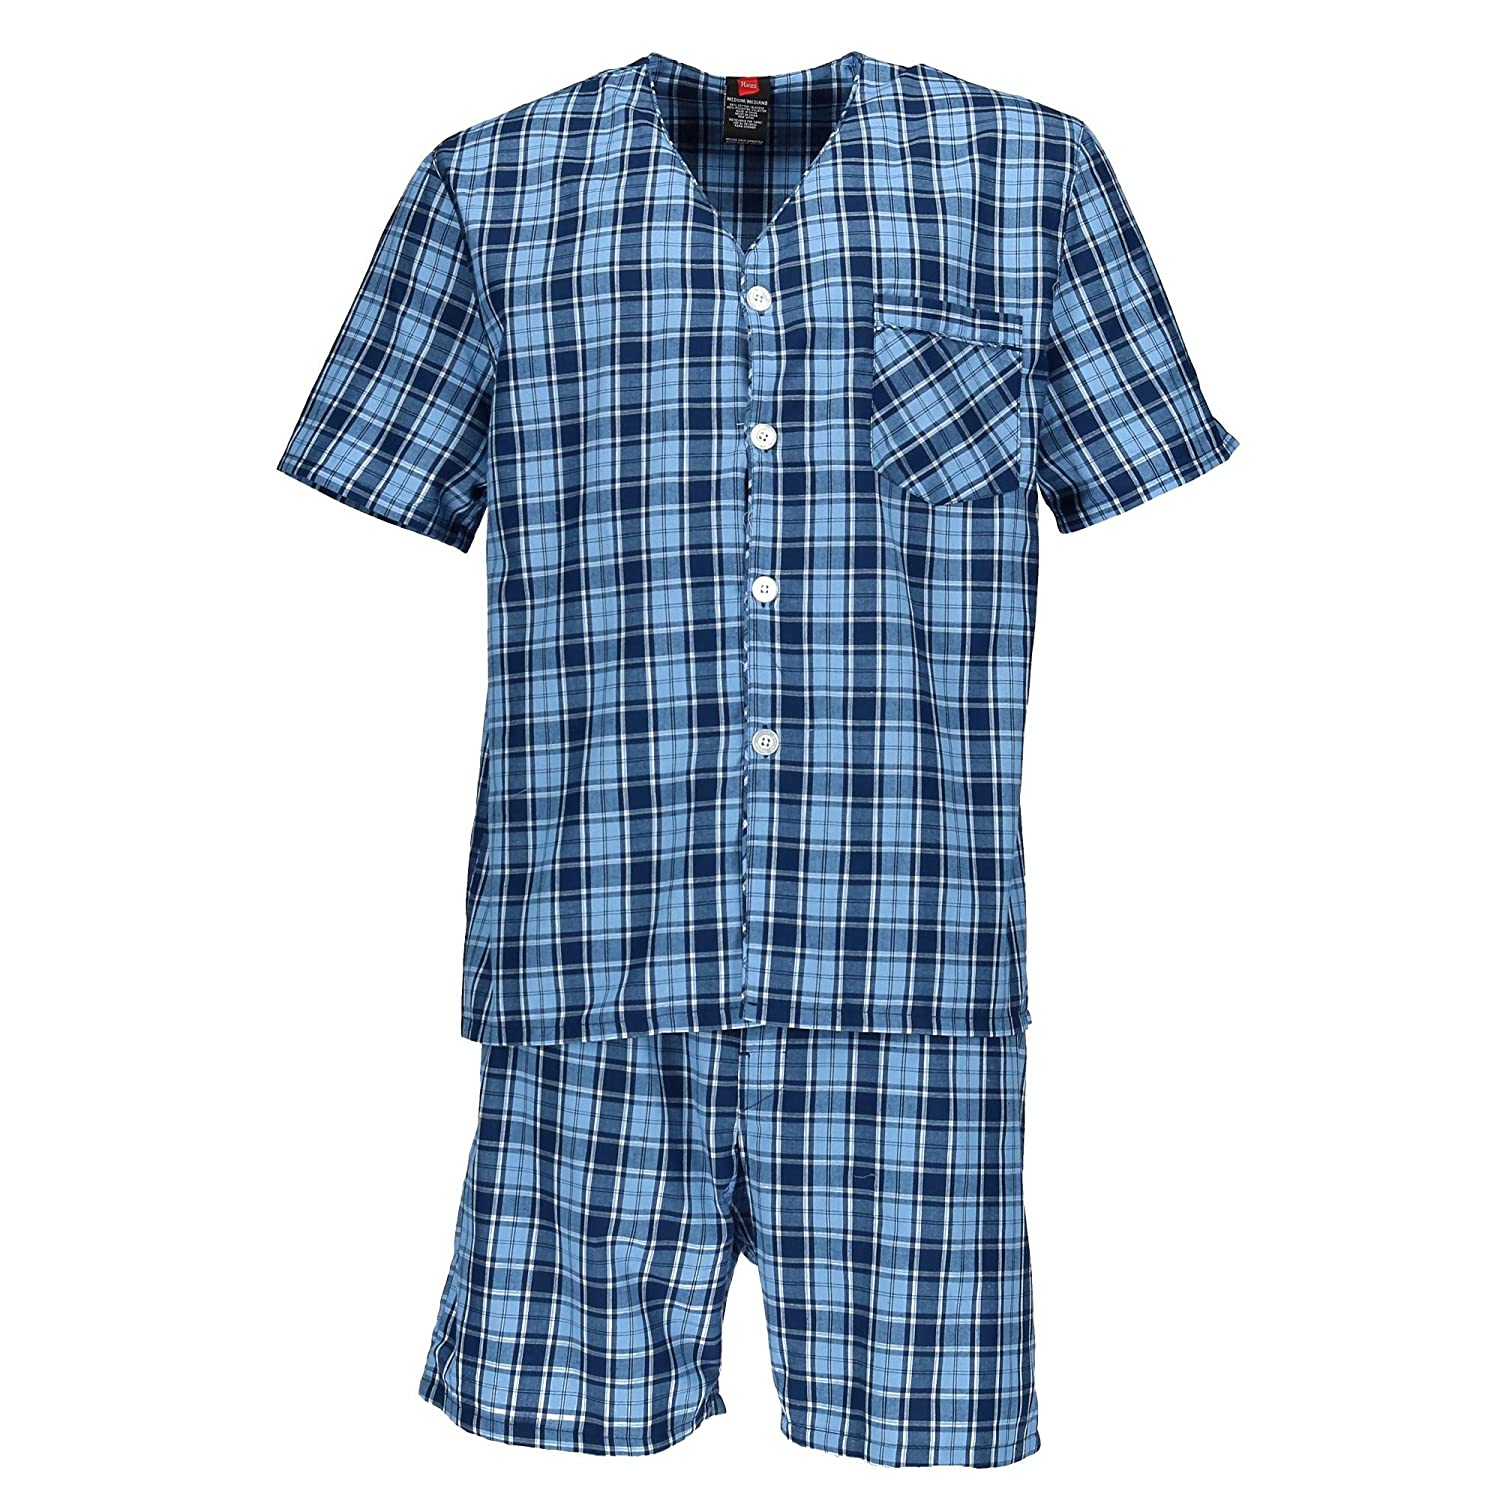 Hanes Men's Short Sleeve Short Leg Pajama Set by Hanes